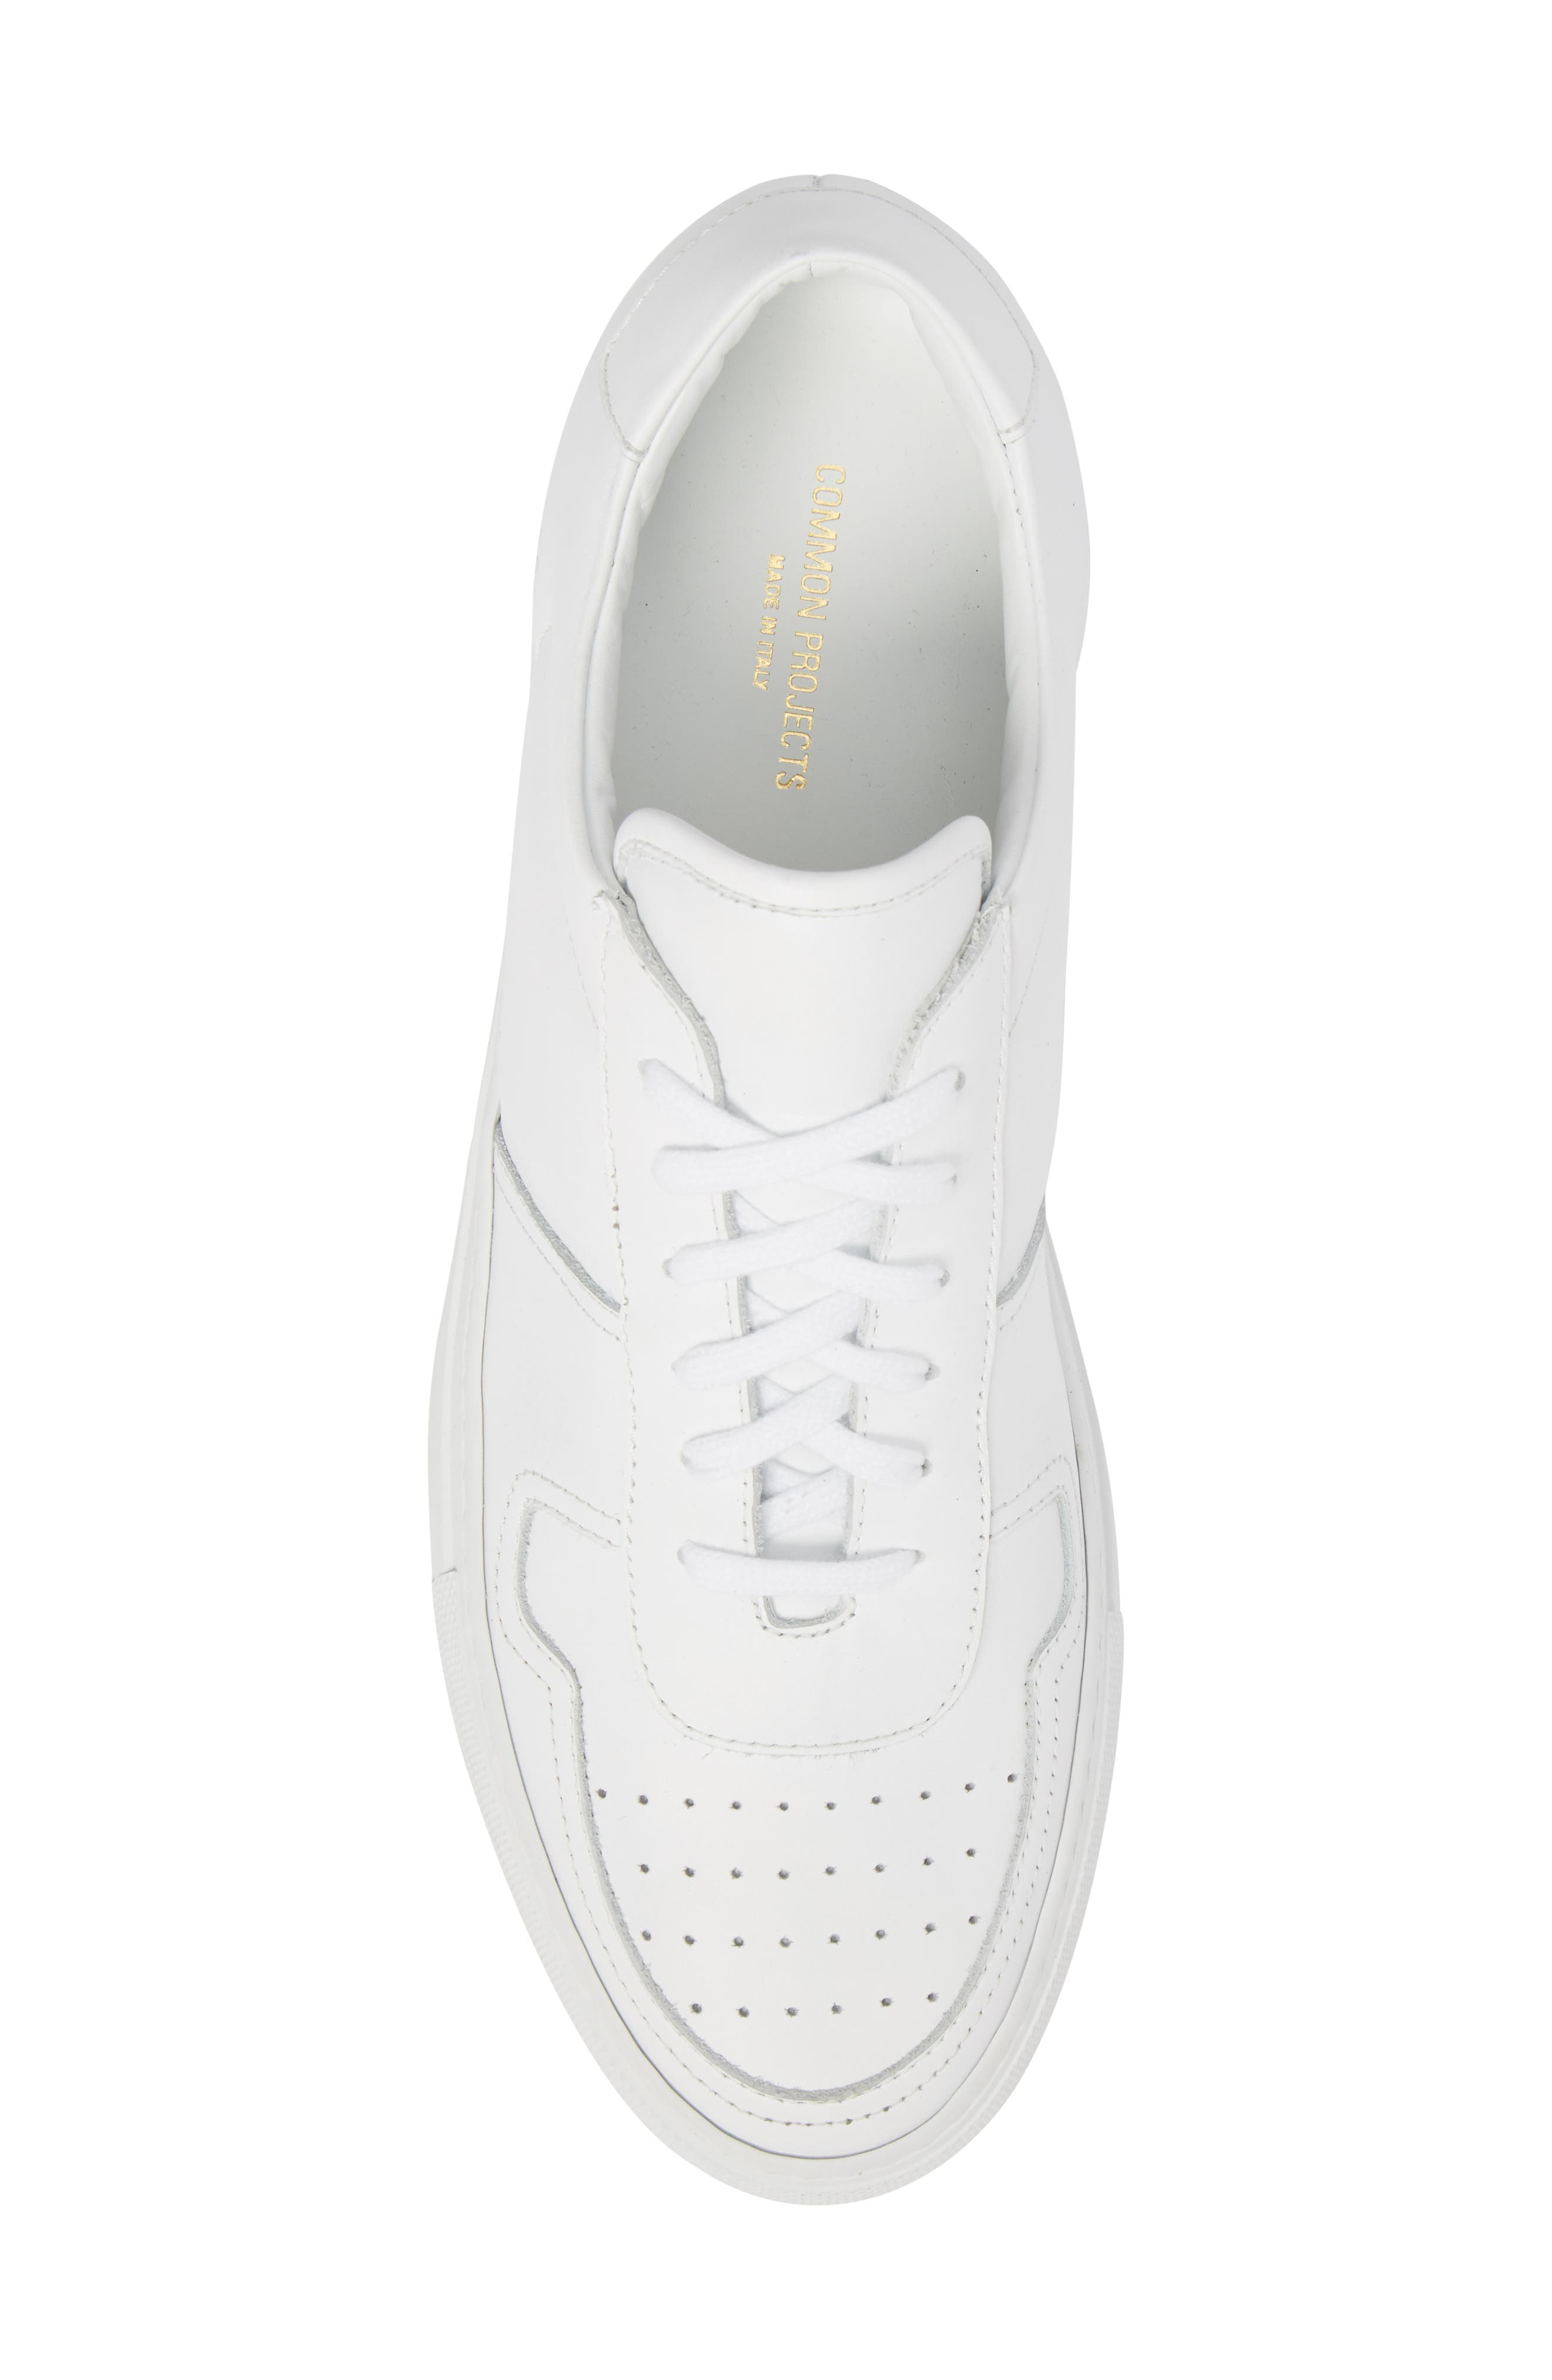 Bball Low Top Sneaker,                             Alternate thumbnail 5, color,                             WHITE LEATHER